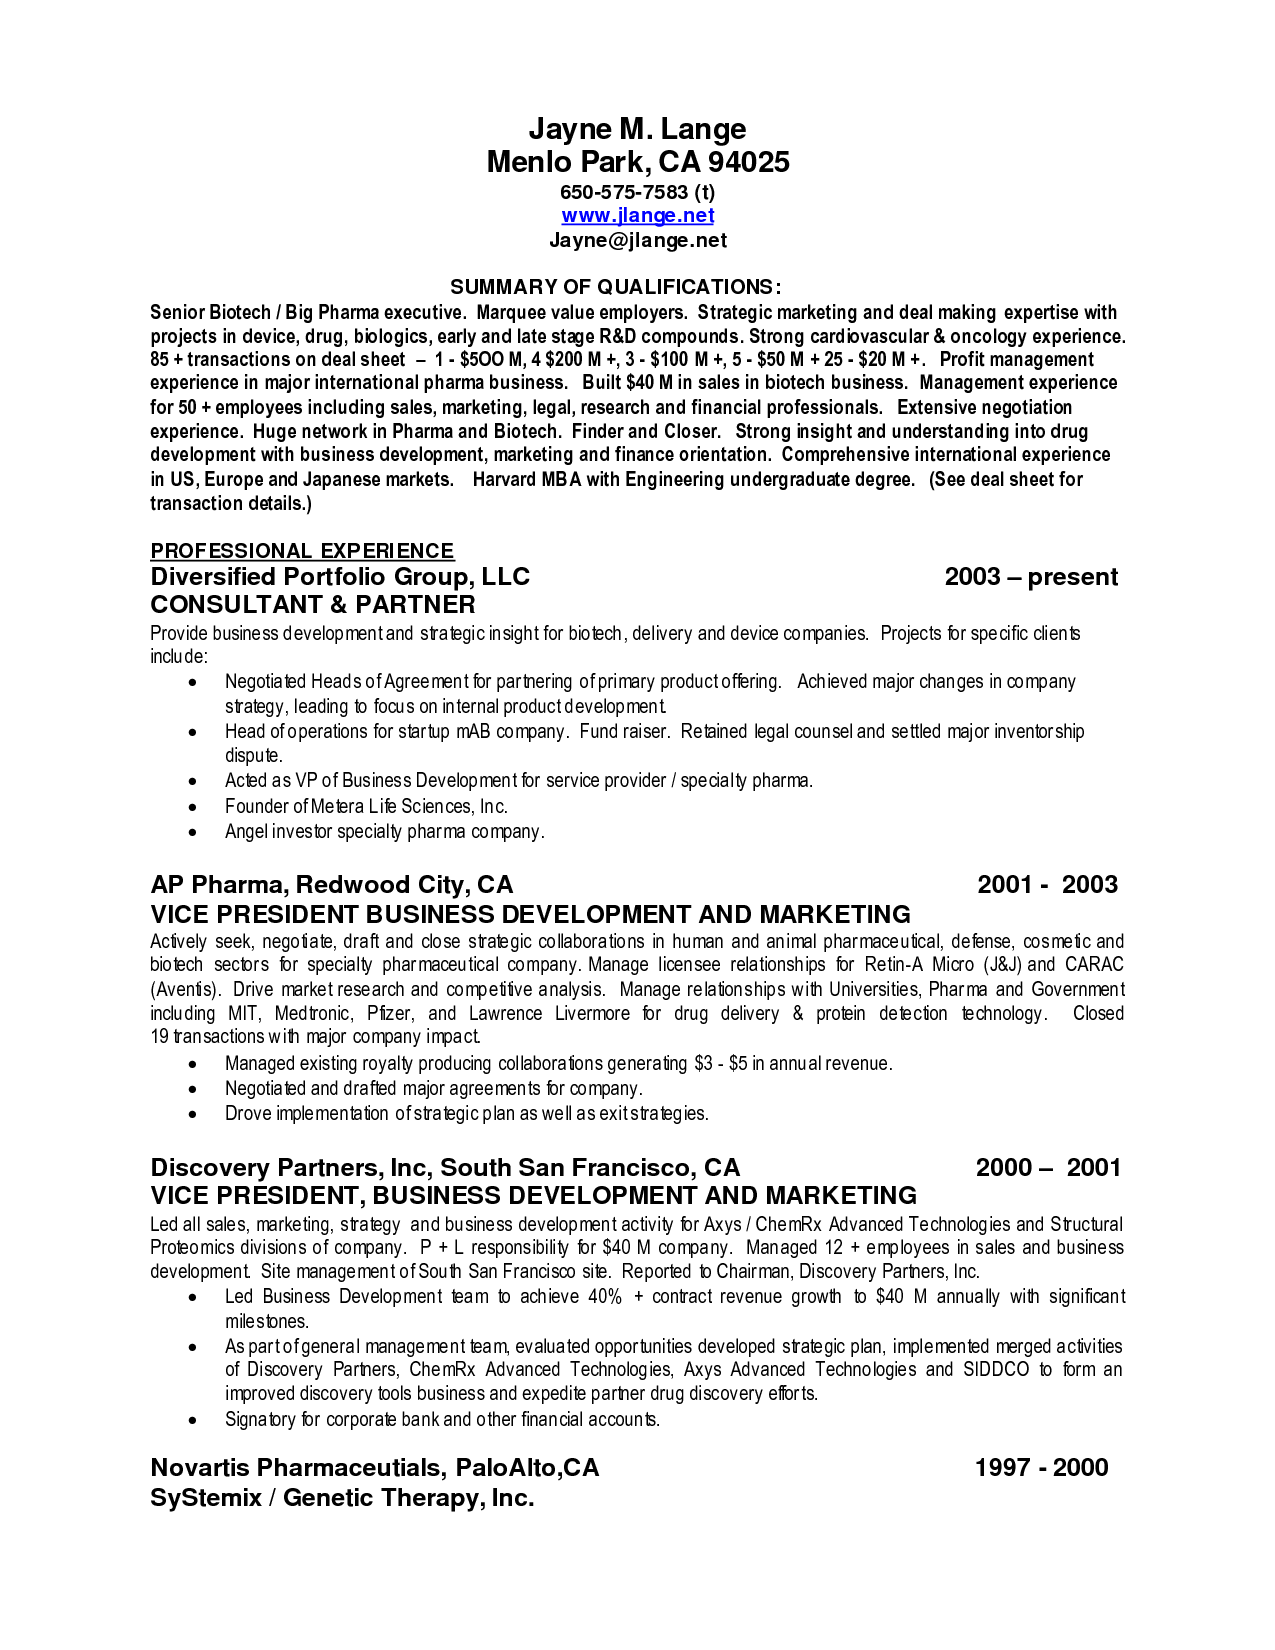 resume qualifications summary examples